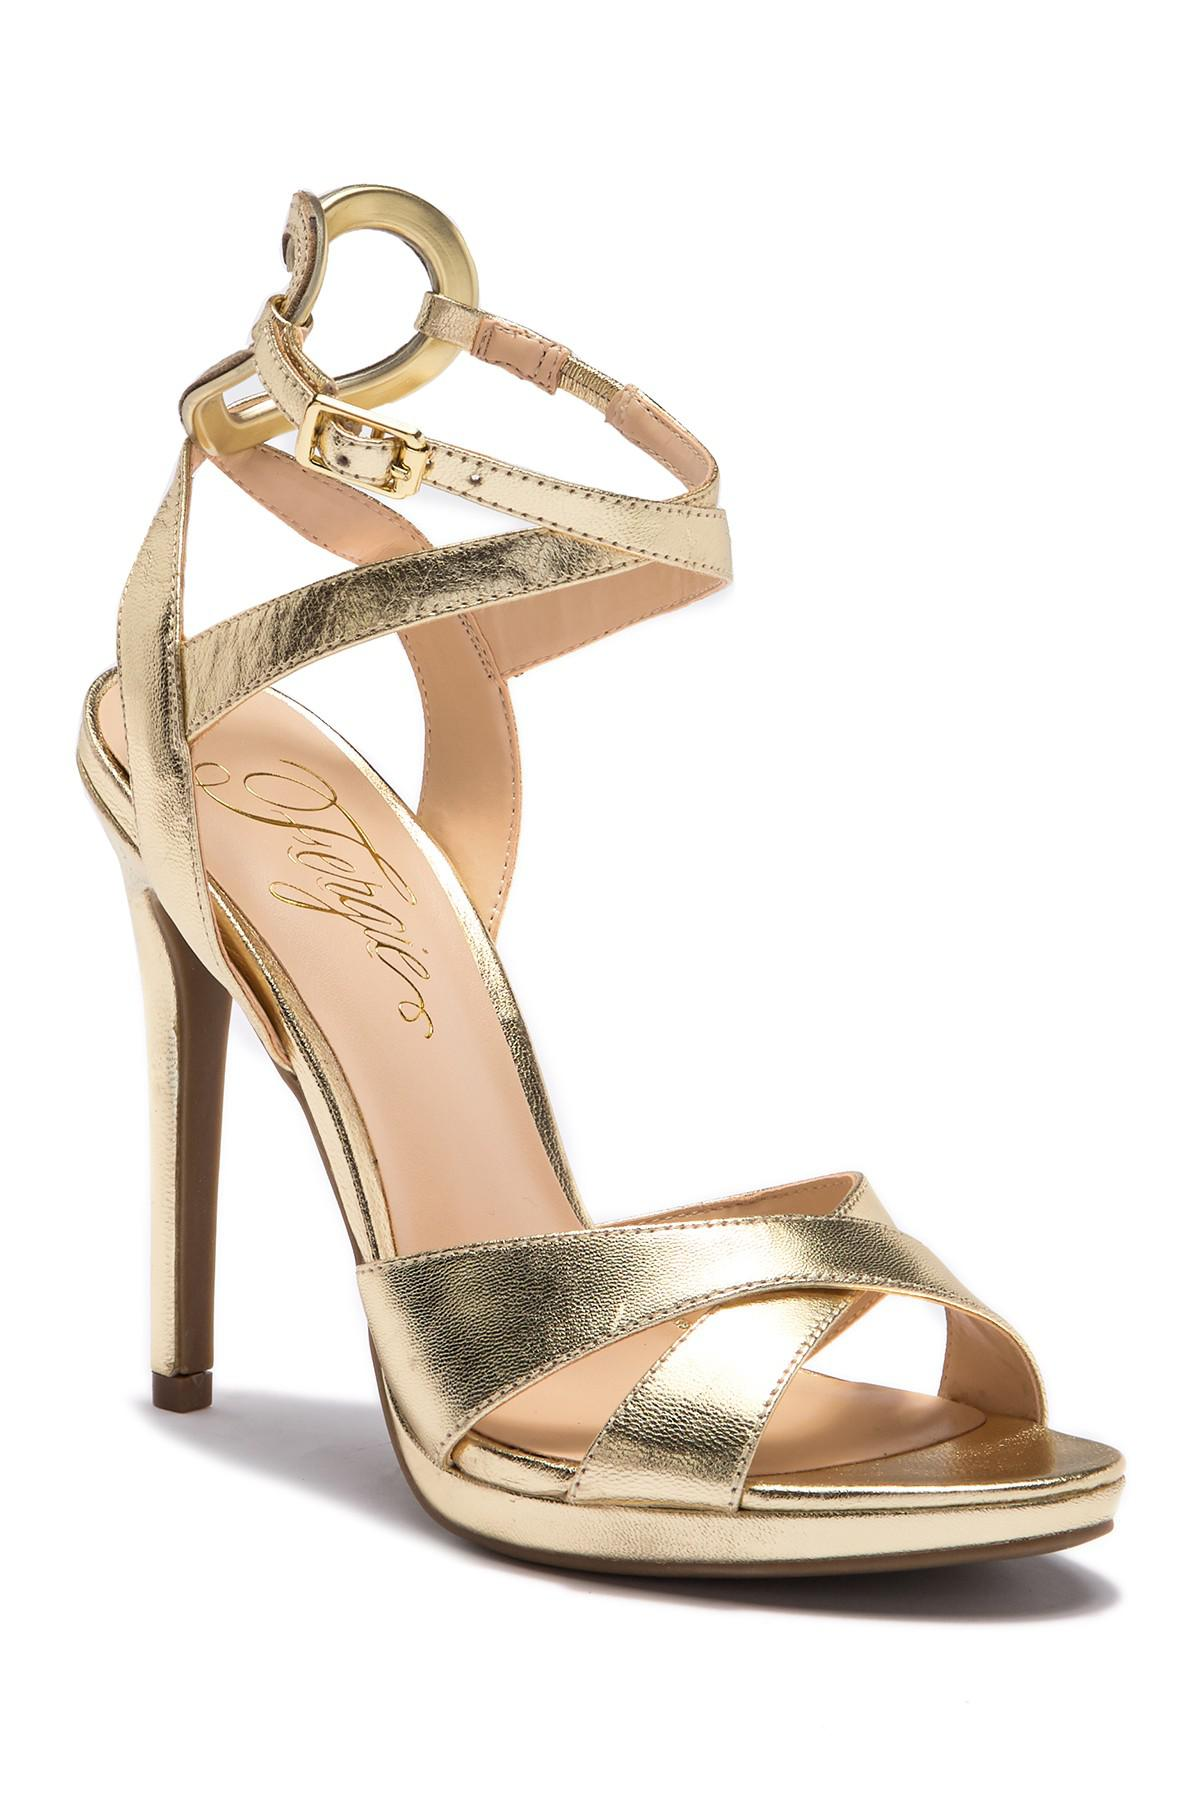 8f5ce6fac Fergie. Women s Naima Ankle Strap Sandal